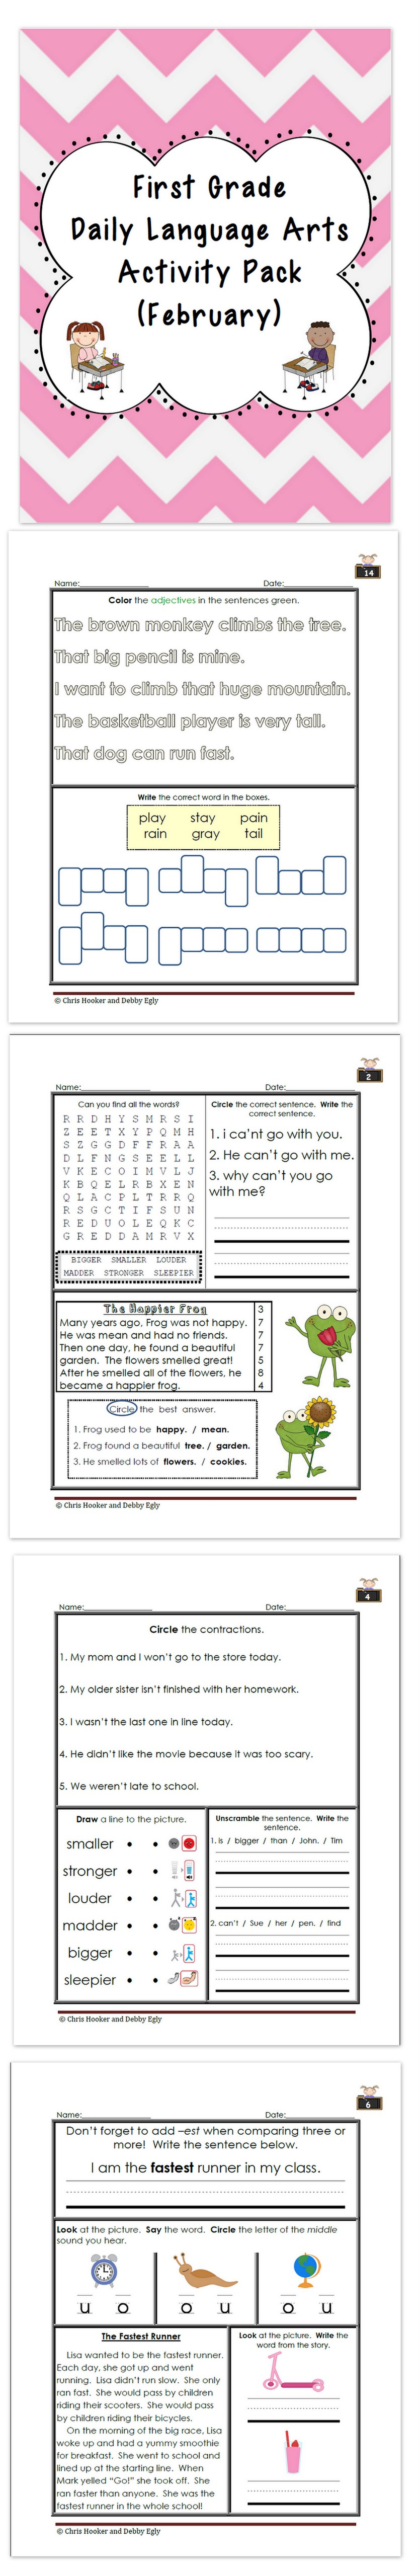 First Grade Vocabulary Worksheets [ 5120 x 835 Pixel ]